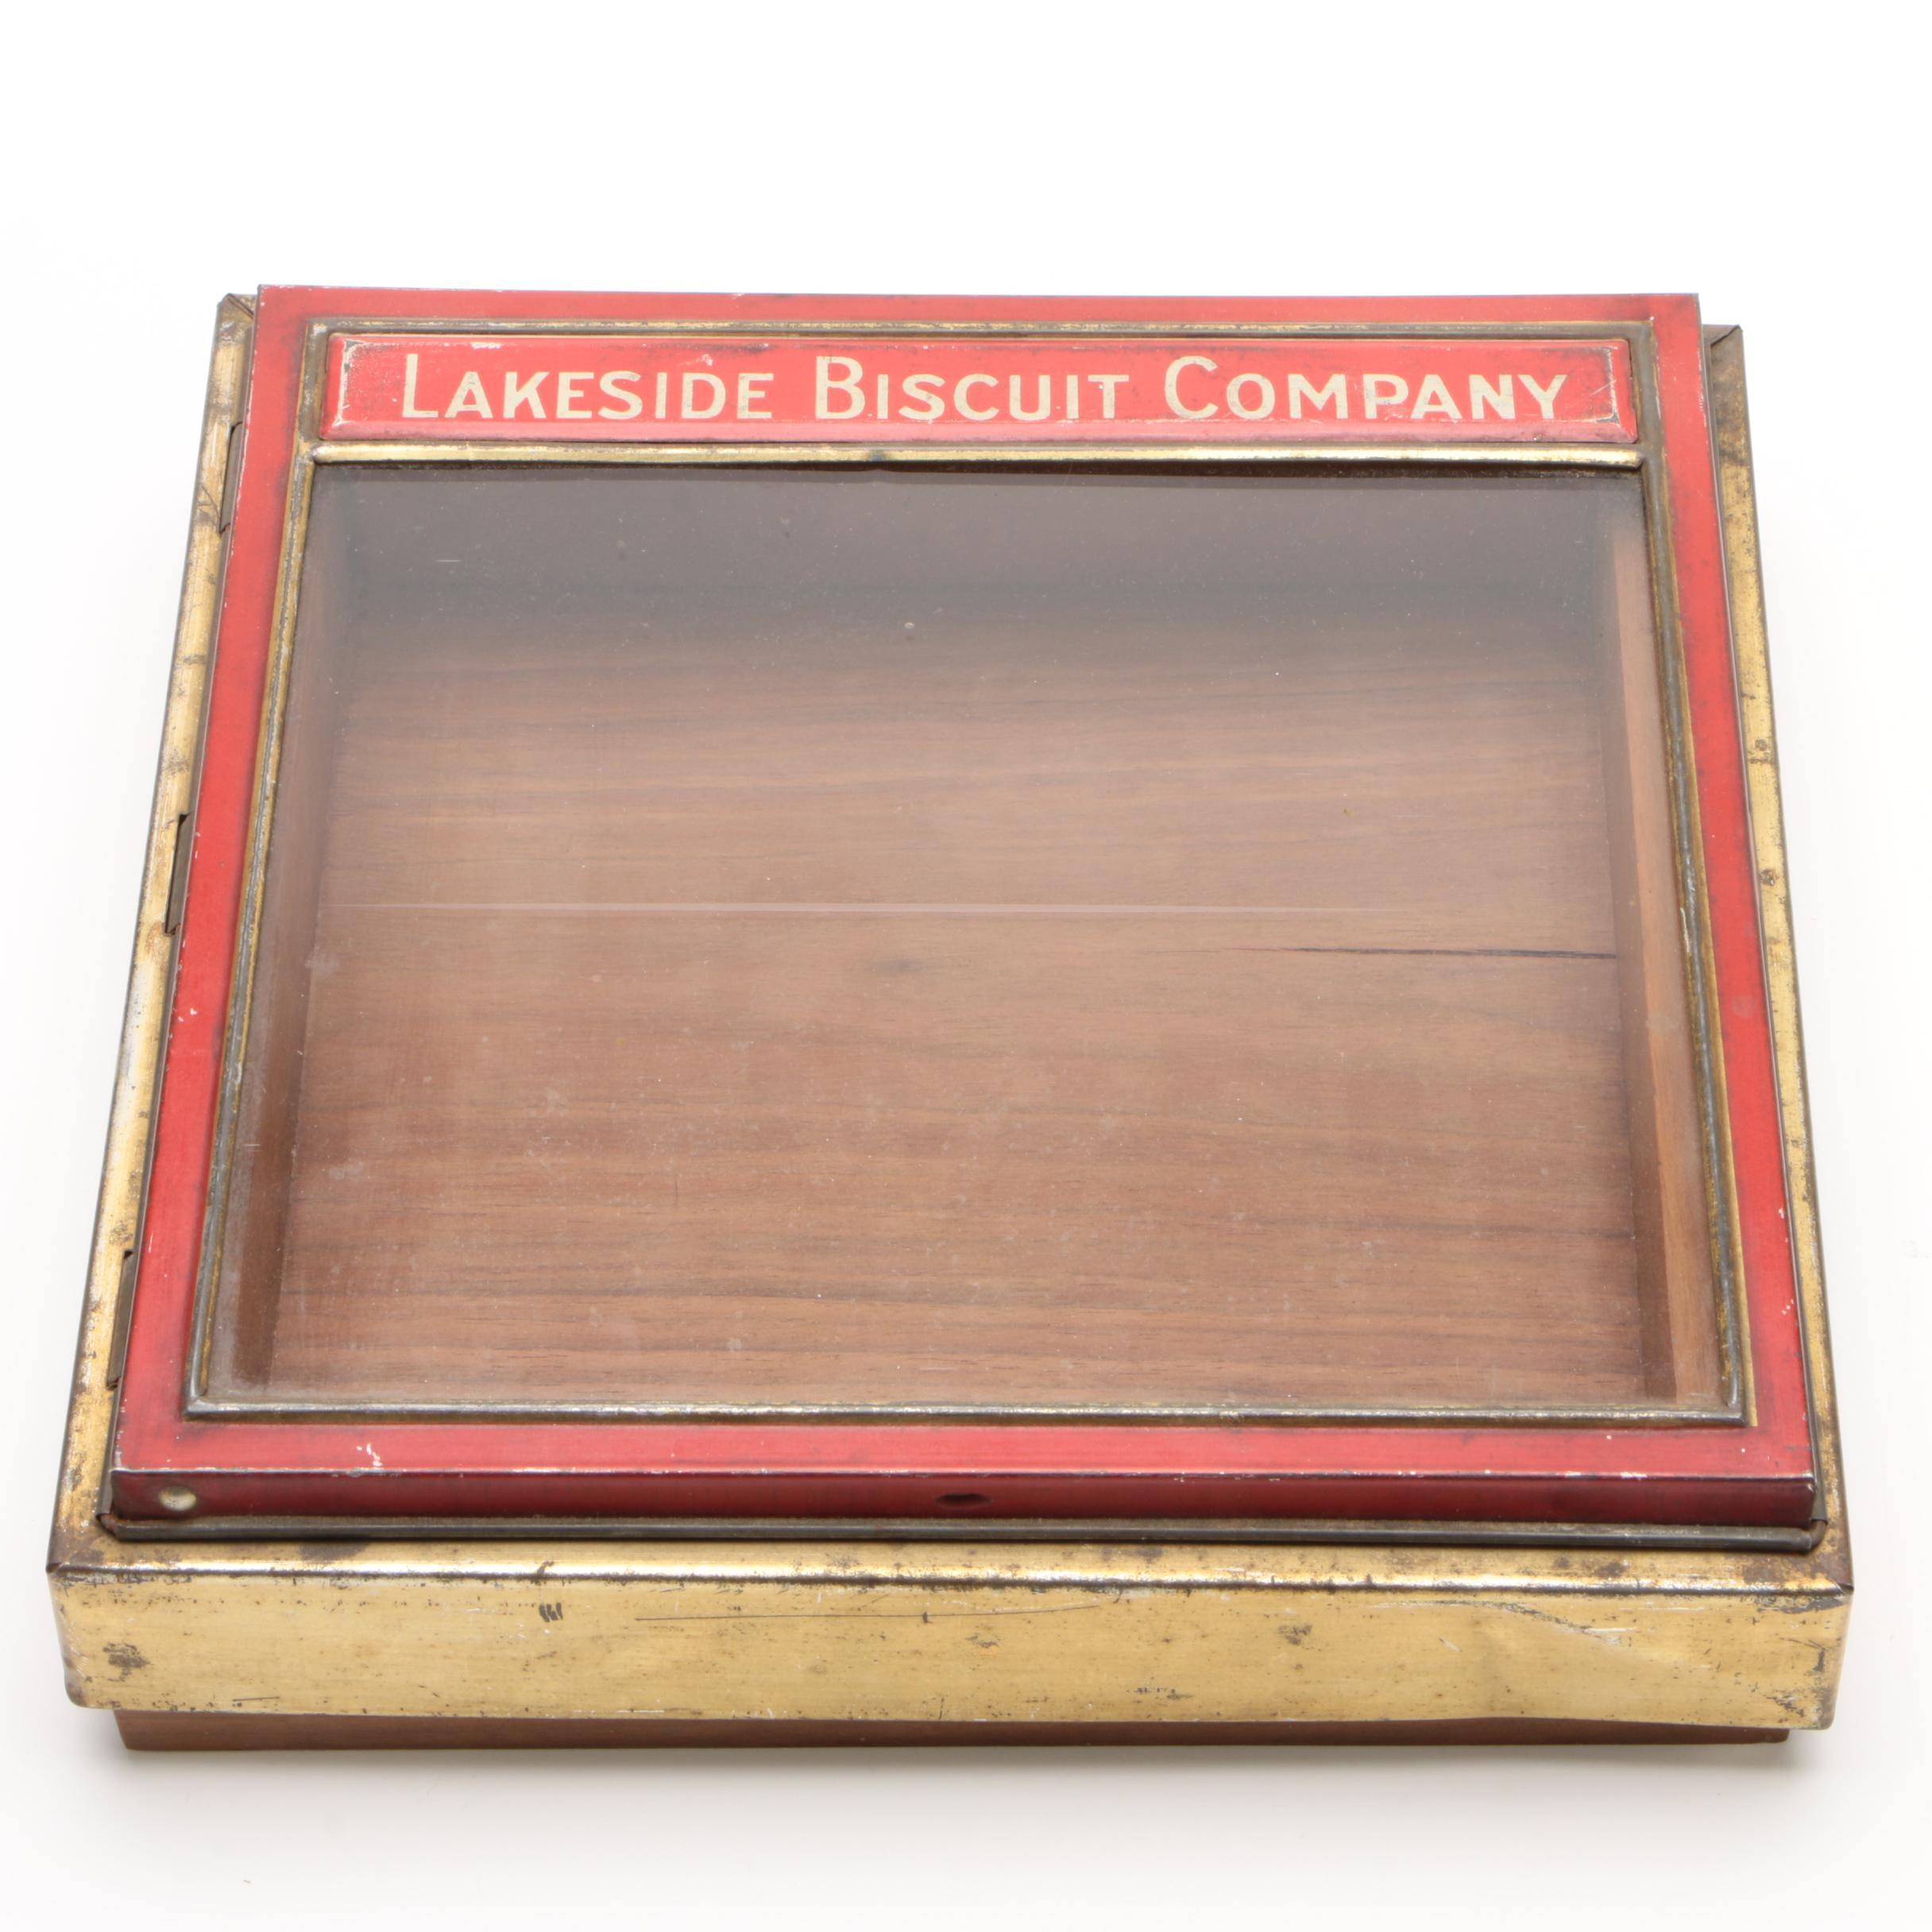 Lakeside Biscuit Company Store Display Tin with Custom-Made Walnut Base